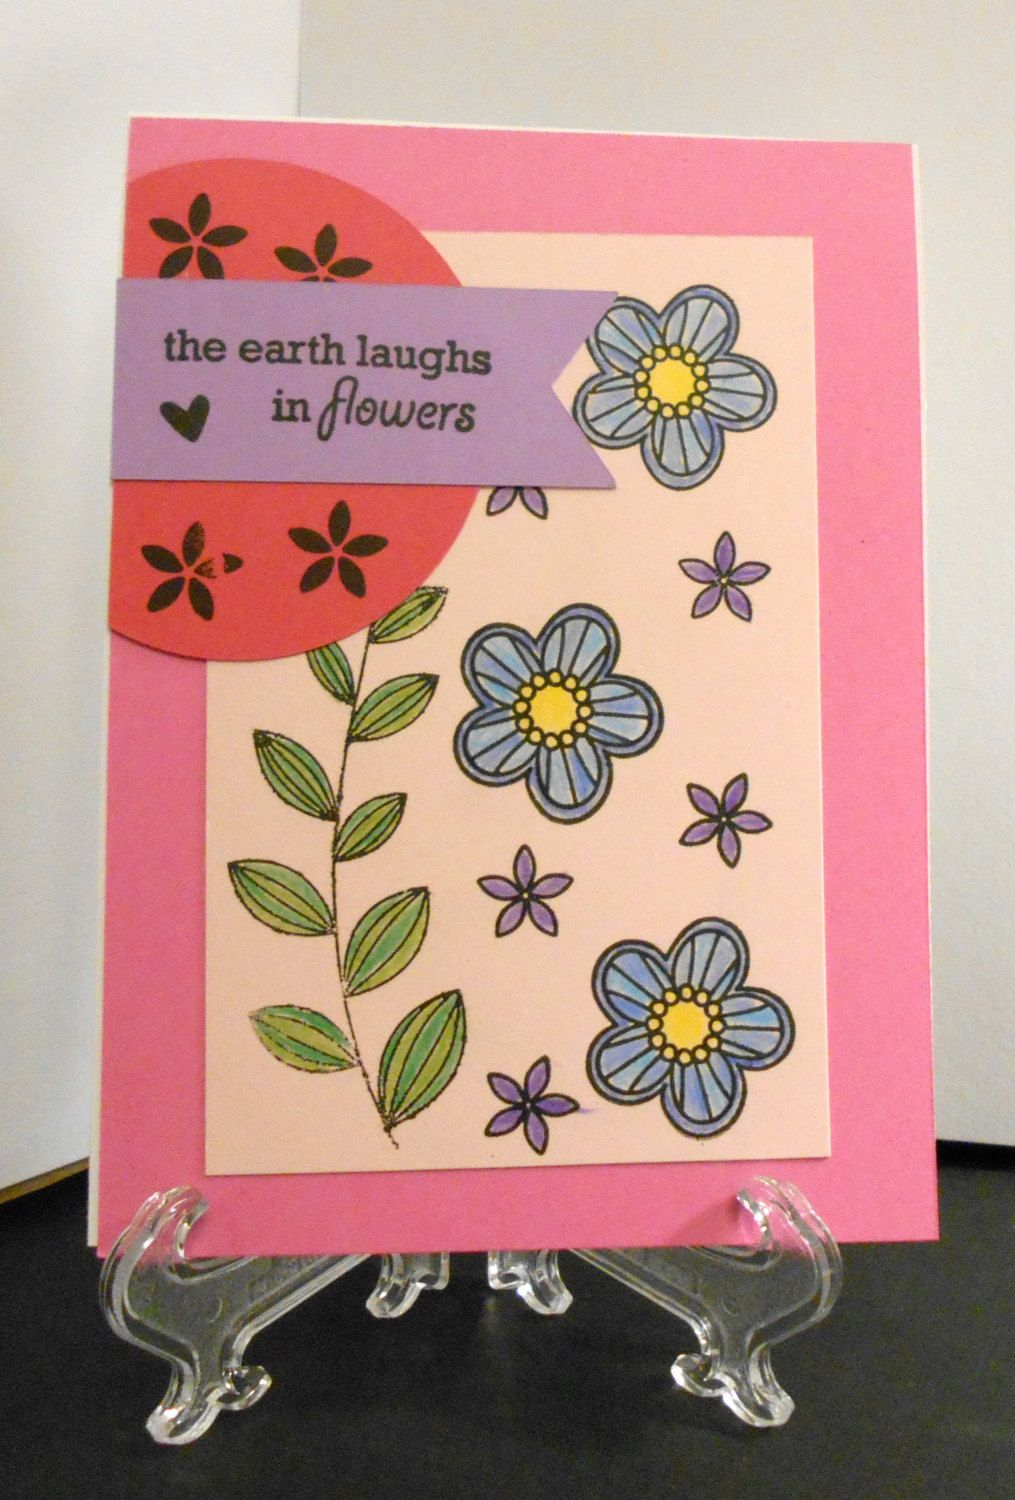 Laughing flowers by Ginadapooh on Etsy